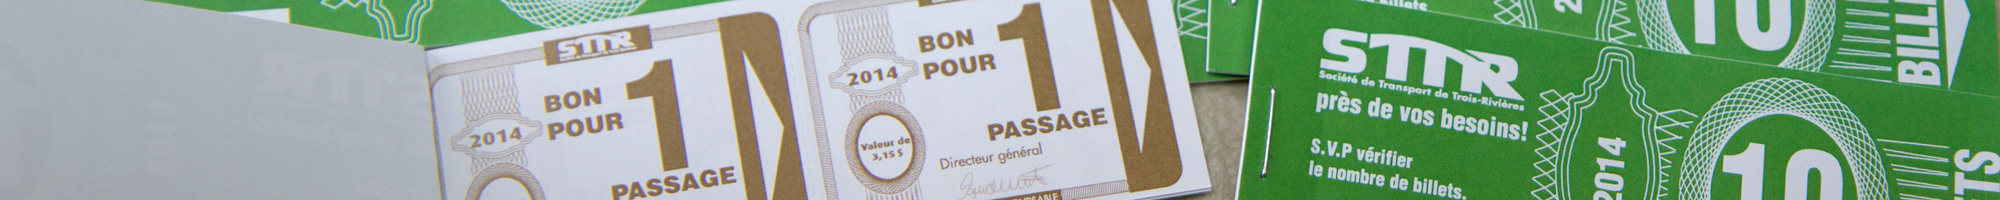 Transport solidaire - Don de billets